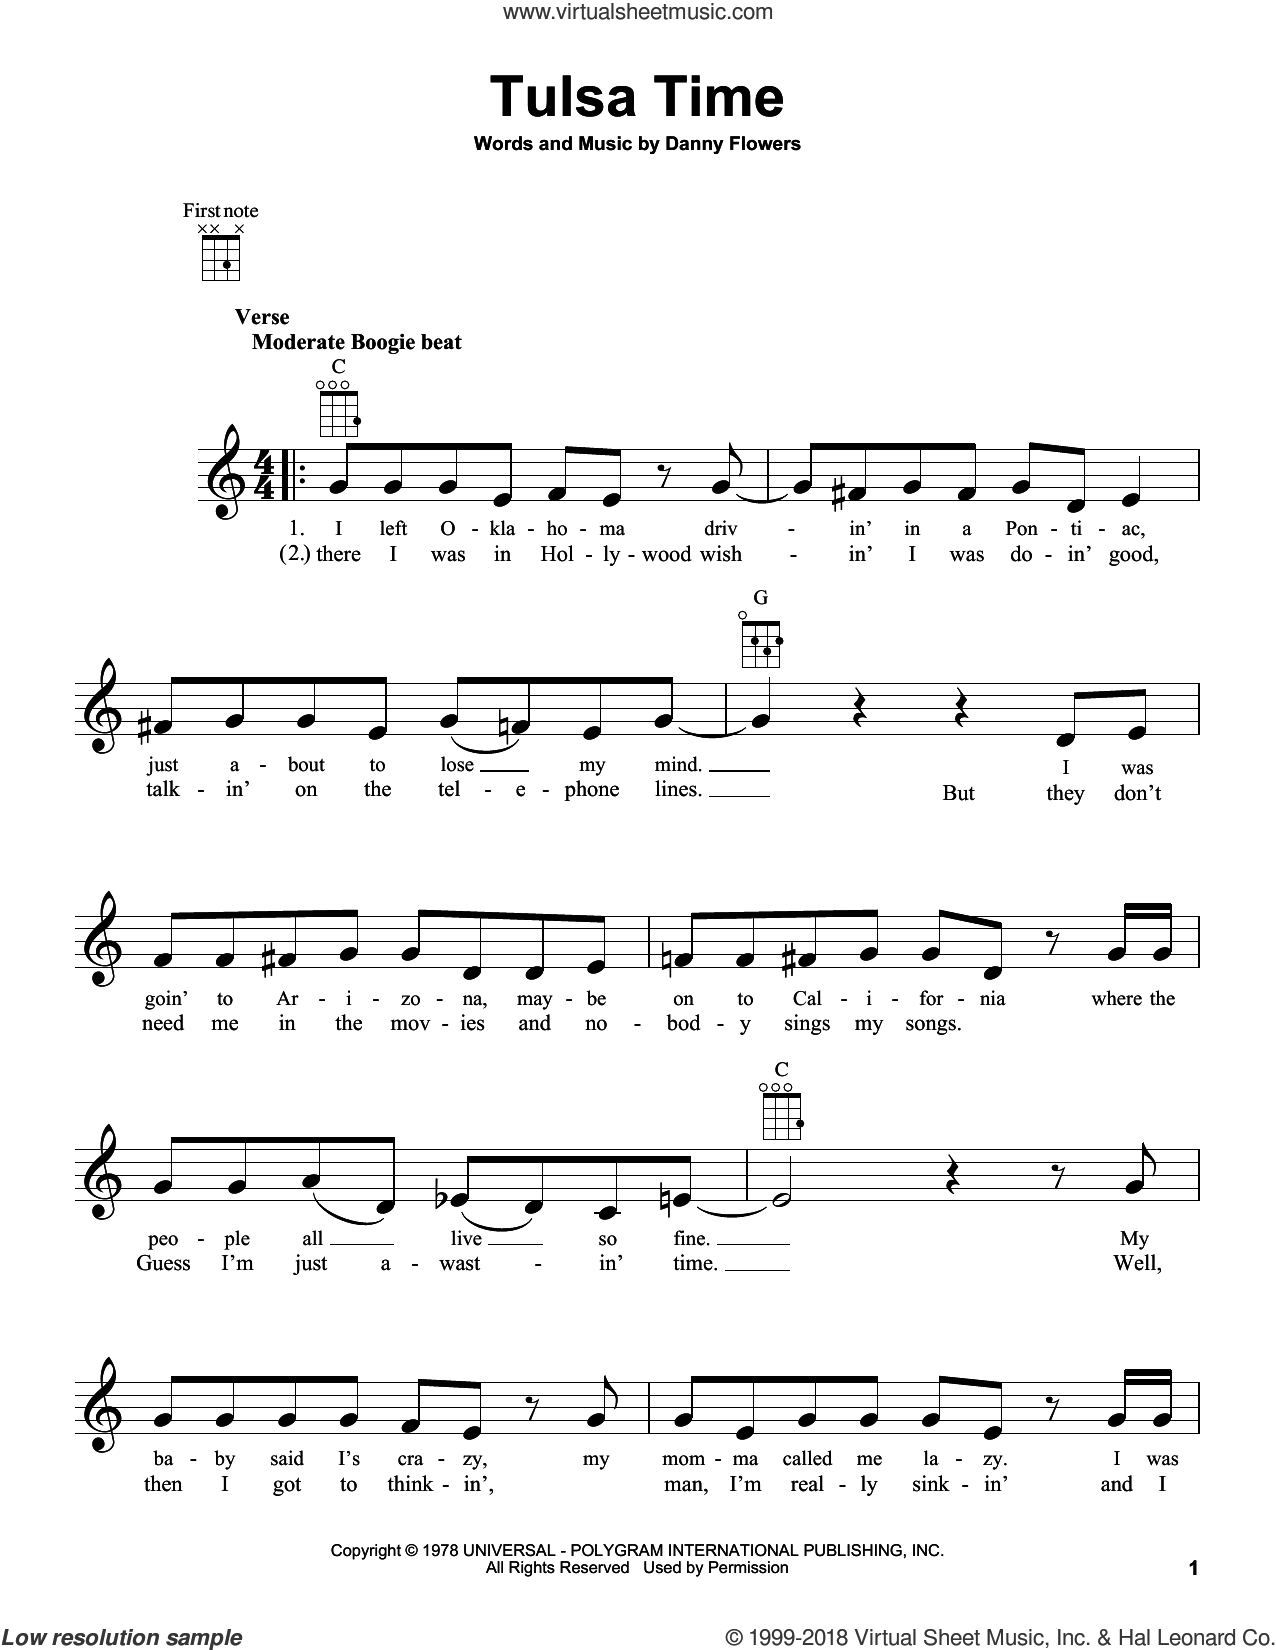 Tulsa Time sheet music for ukulele by Don Williams, Eric Clapton and Danny Flowers, intermediate skill level